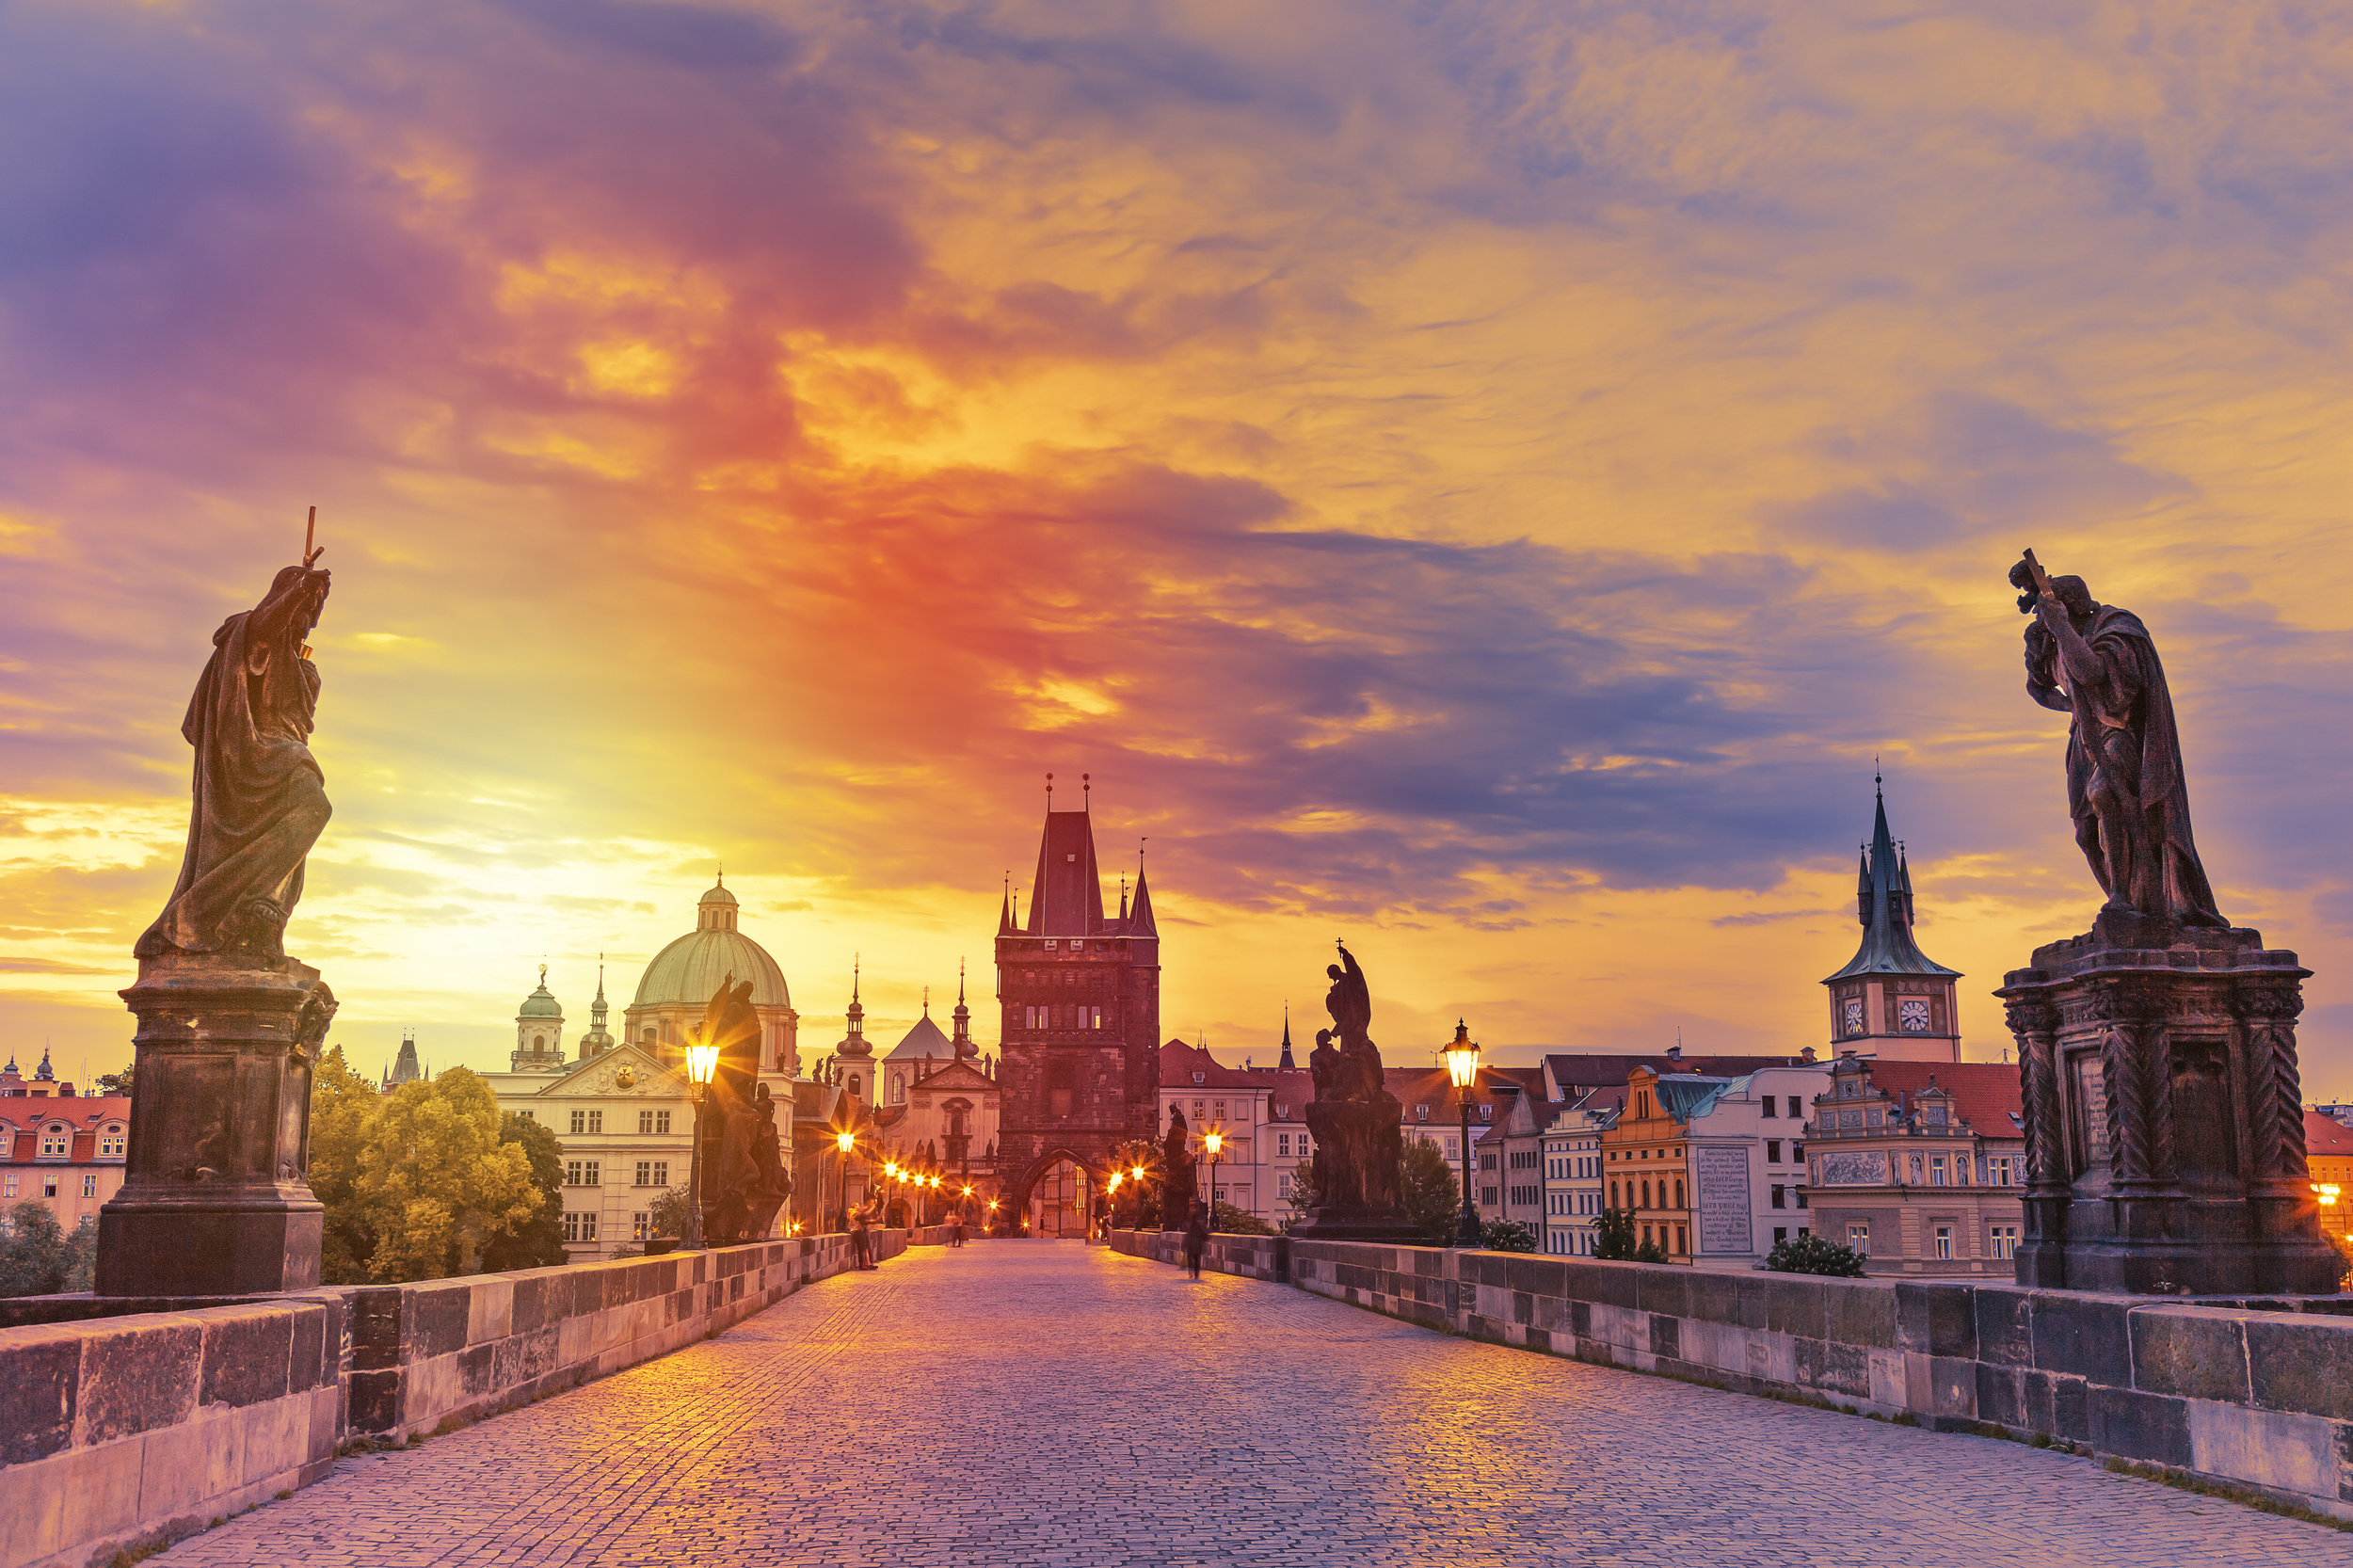 Sunrise on Charles Bridge in Prague, Czech Republic